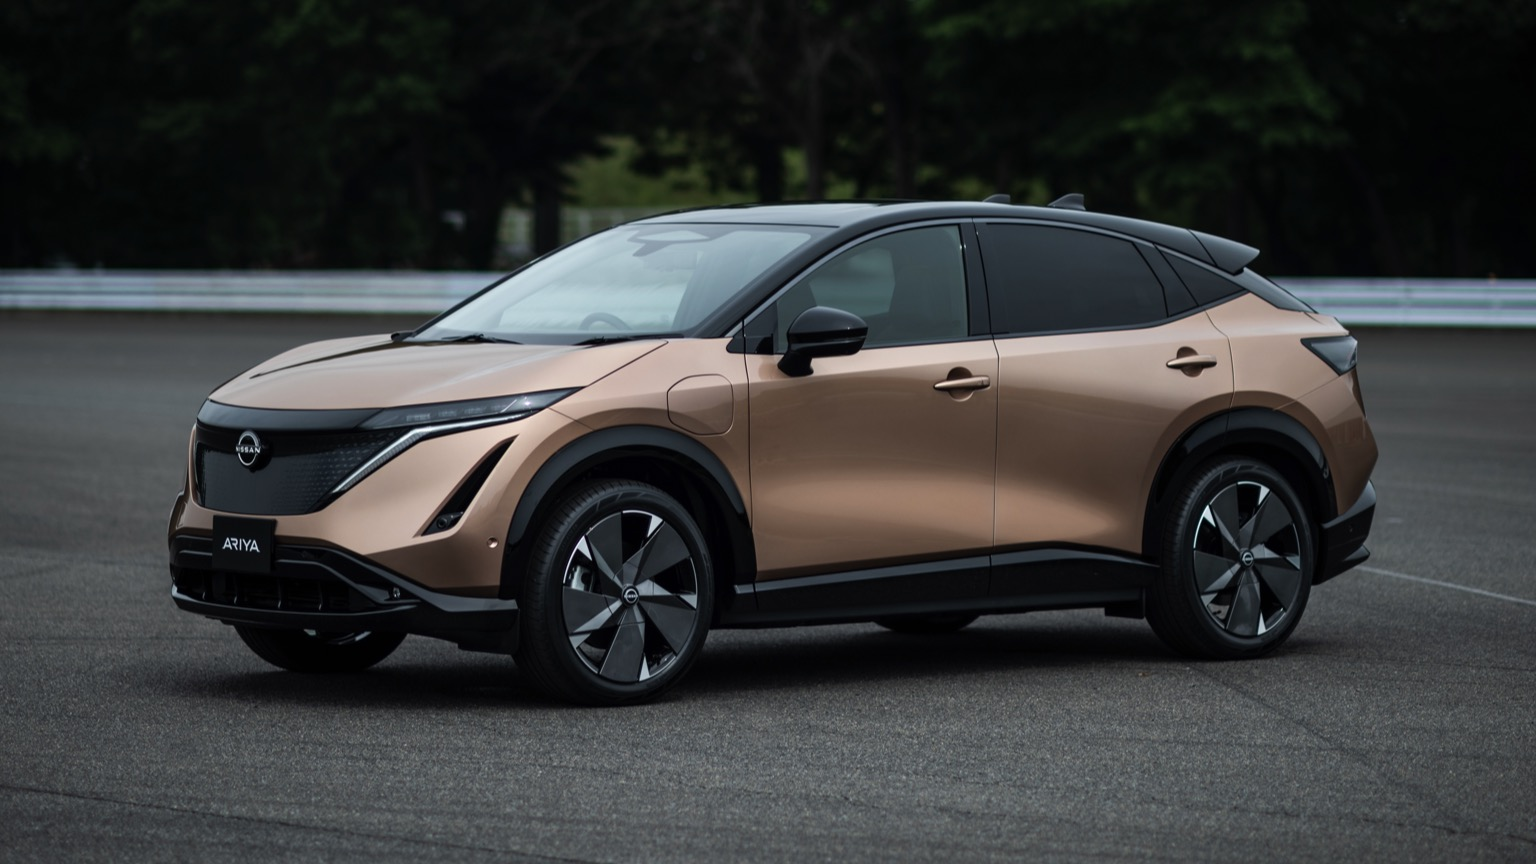 Nissan Ariya 63kWh price and specifications - EV Database